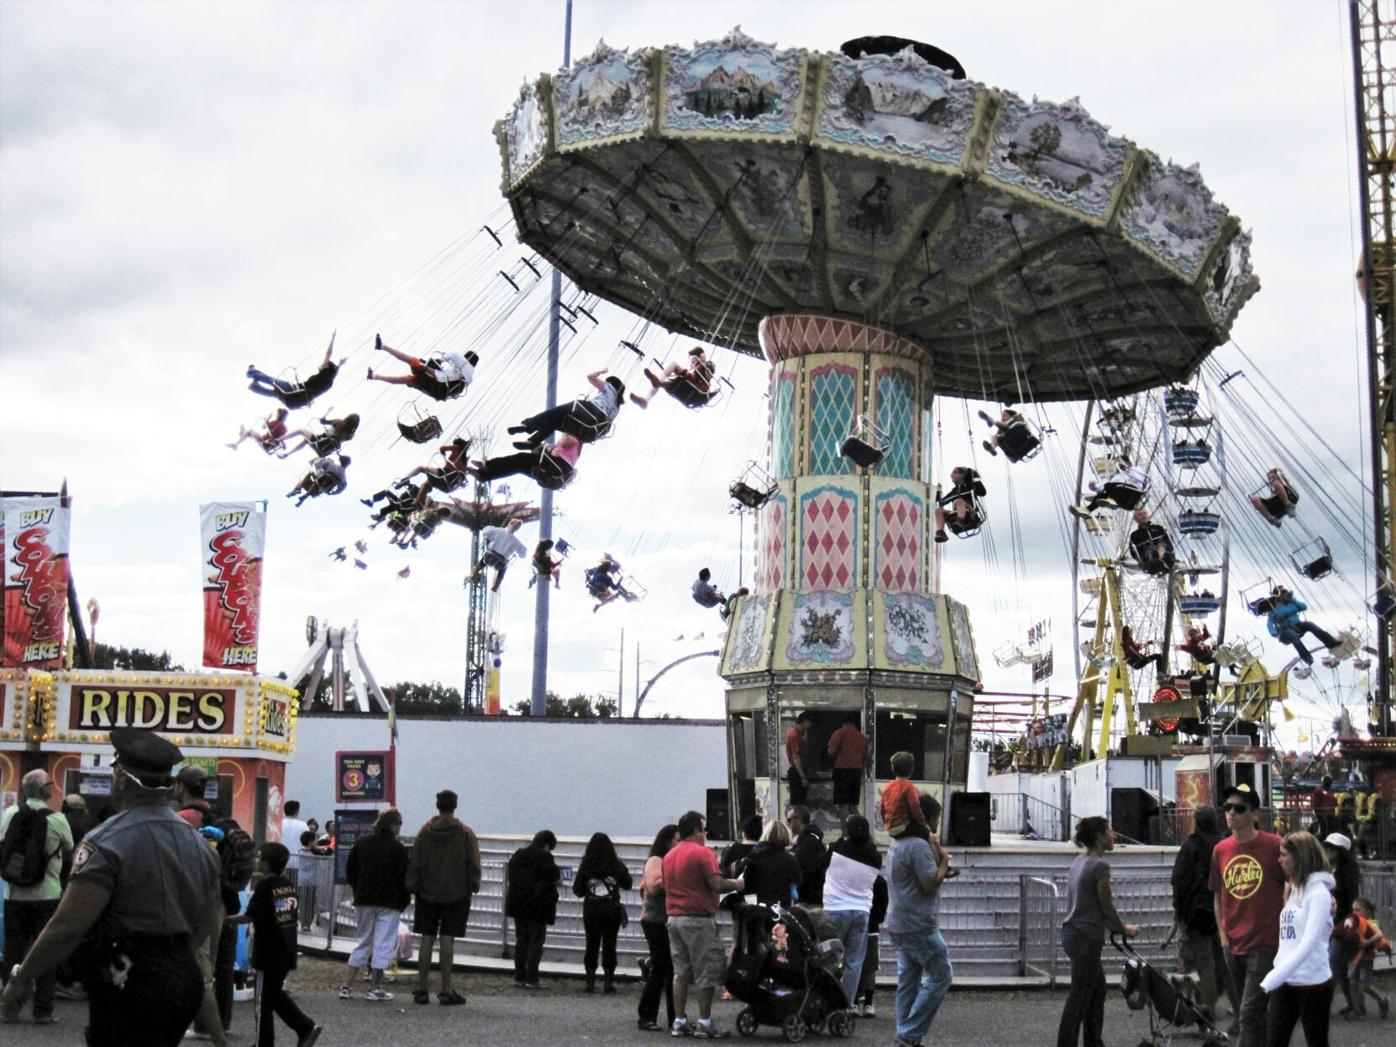 People ride a Swing Carousel at The Big E